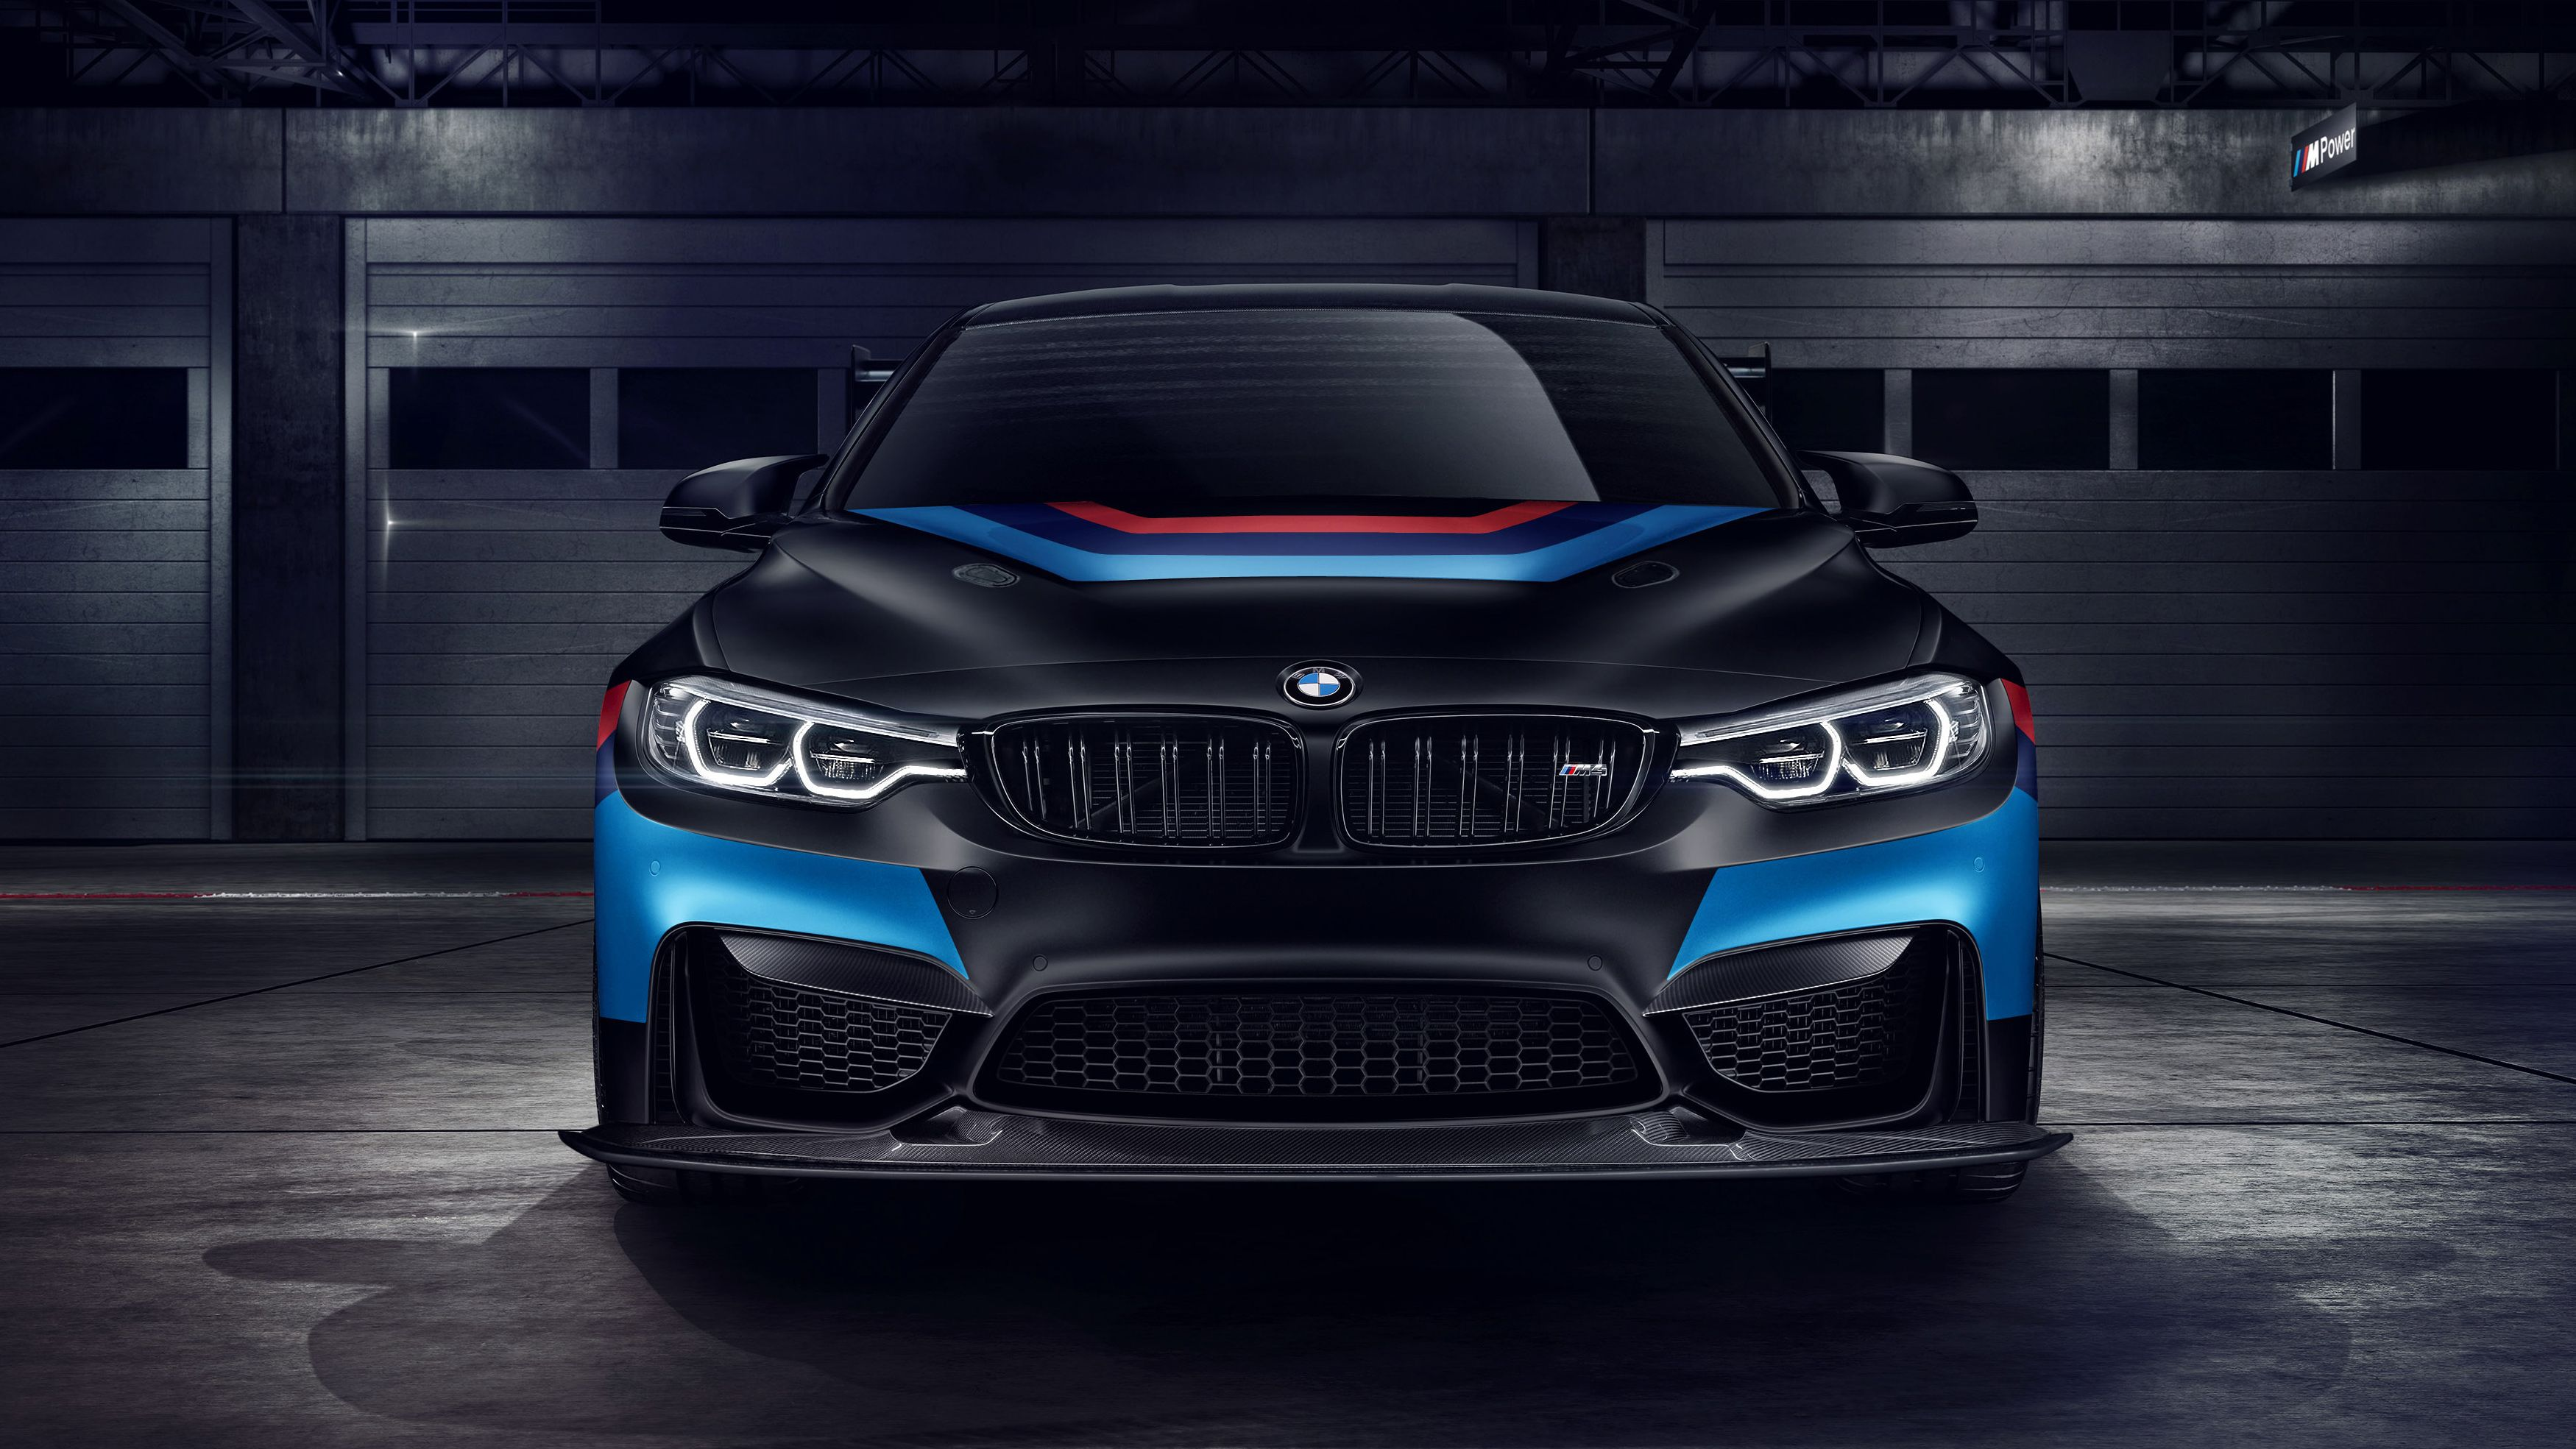 Bmw M4 Wallpapers Top Free Bmw M4 Backgrounds Wallpaperaccess